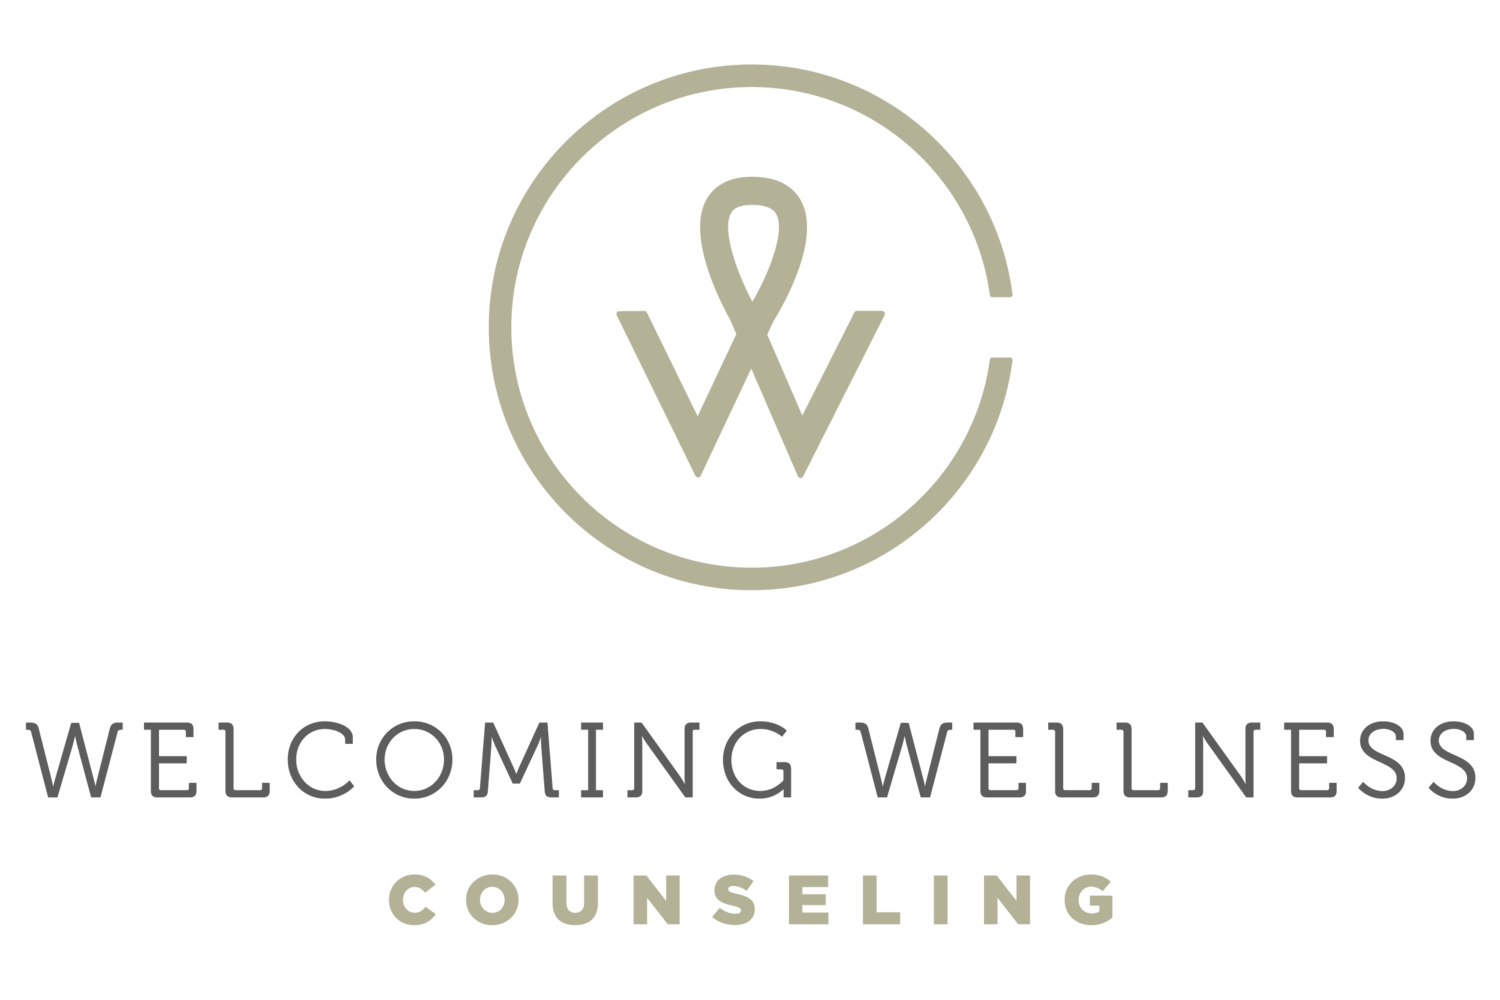 Welcoming Wellness